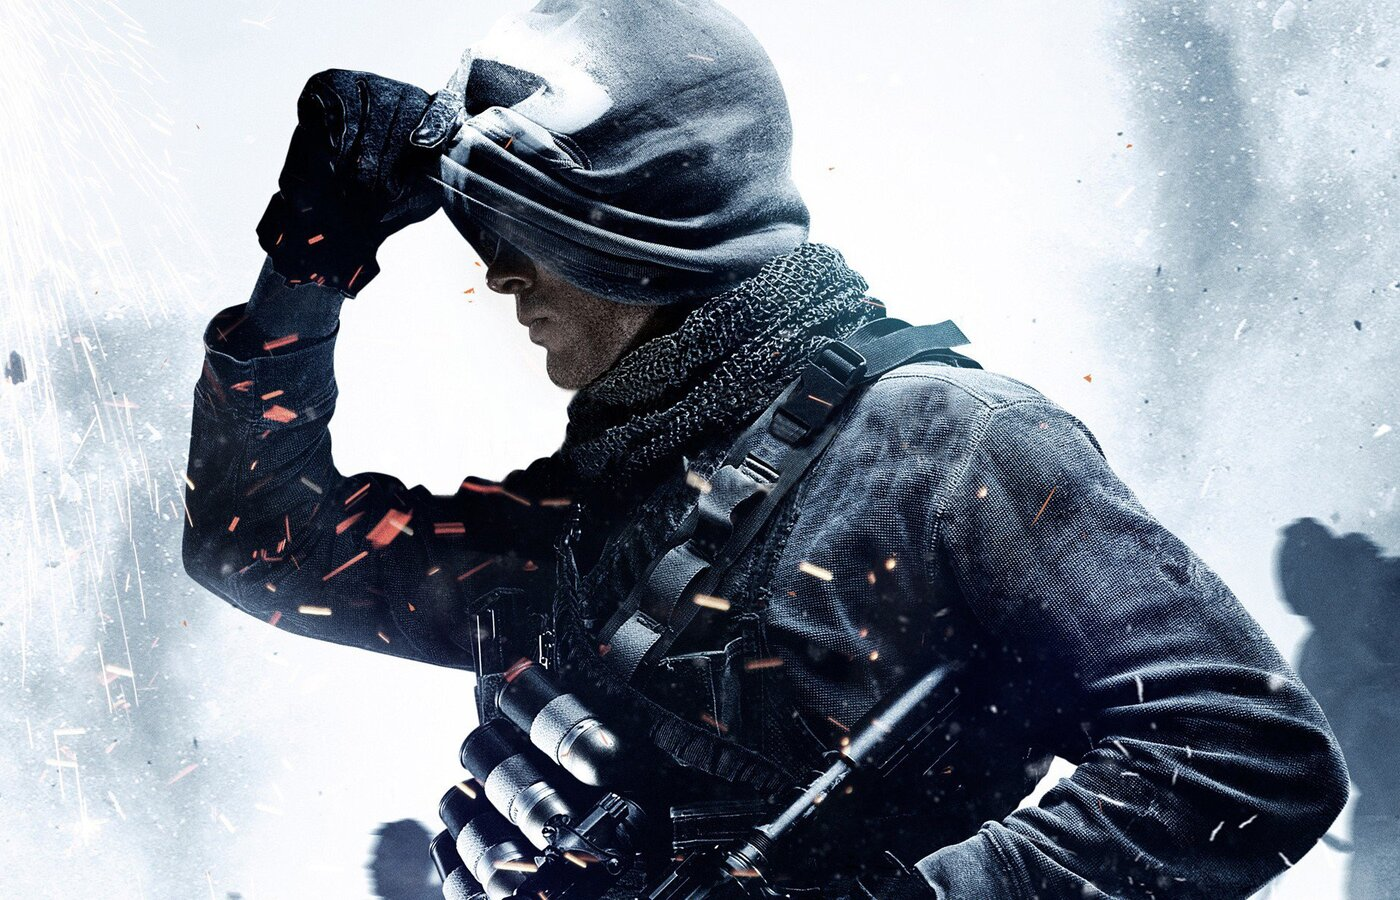 1400x900 Call Of Duty Ghosts Game 1400x900 Resolution Hd 4k